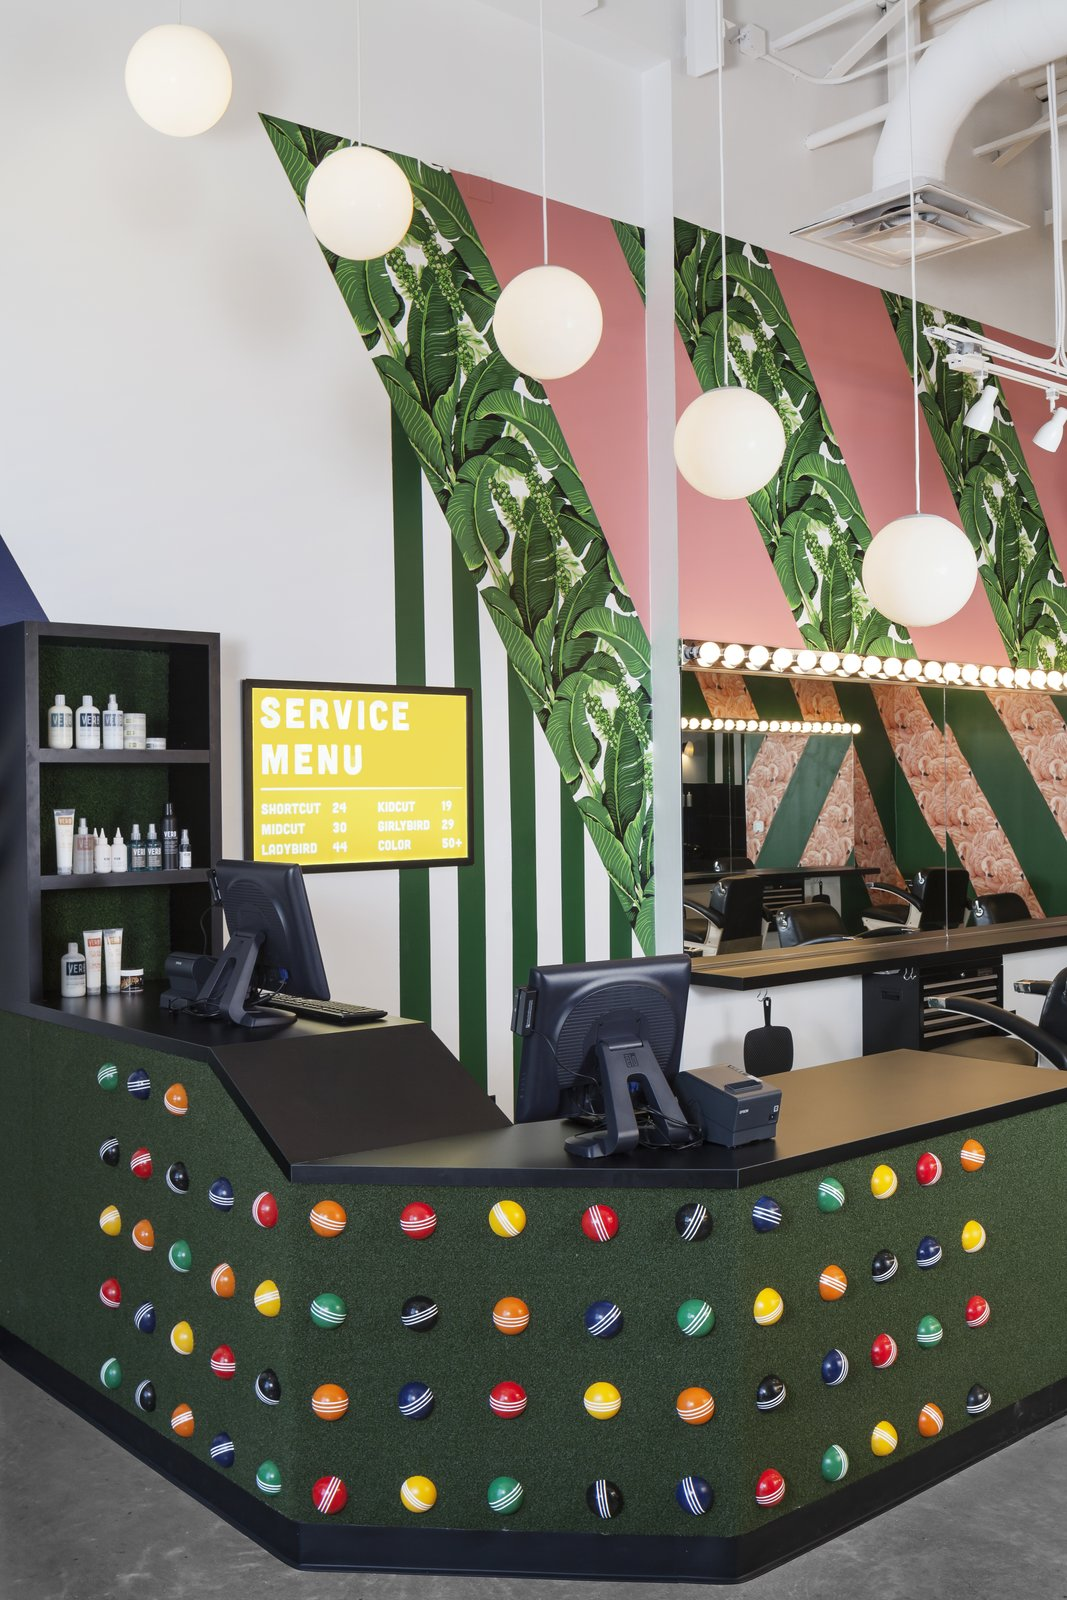 Artificial turf and croquet balls add texture and personality to the reception desk.  Photo 5 of 7 in A Barbershop That's a Cut Above